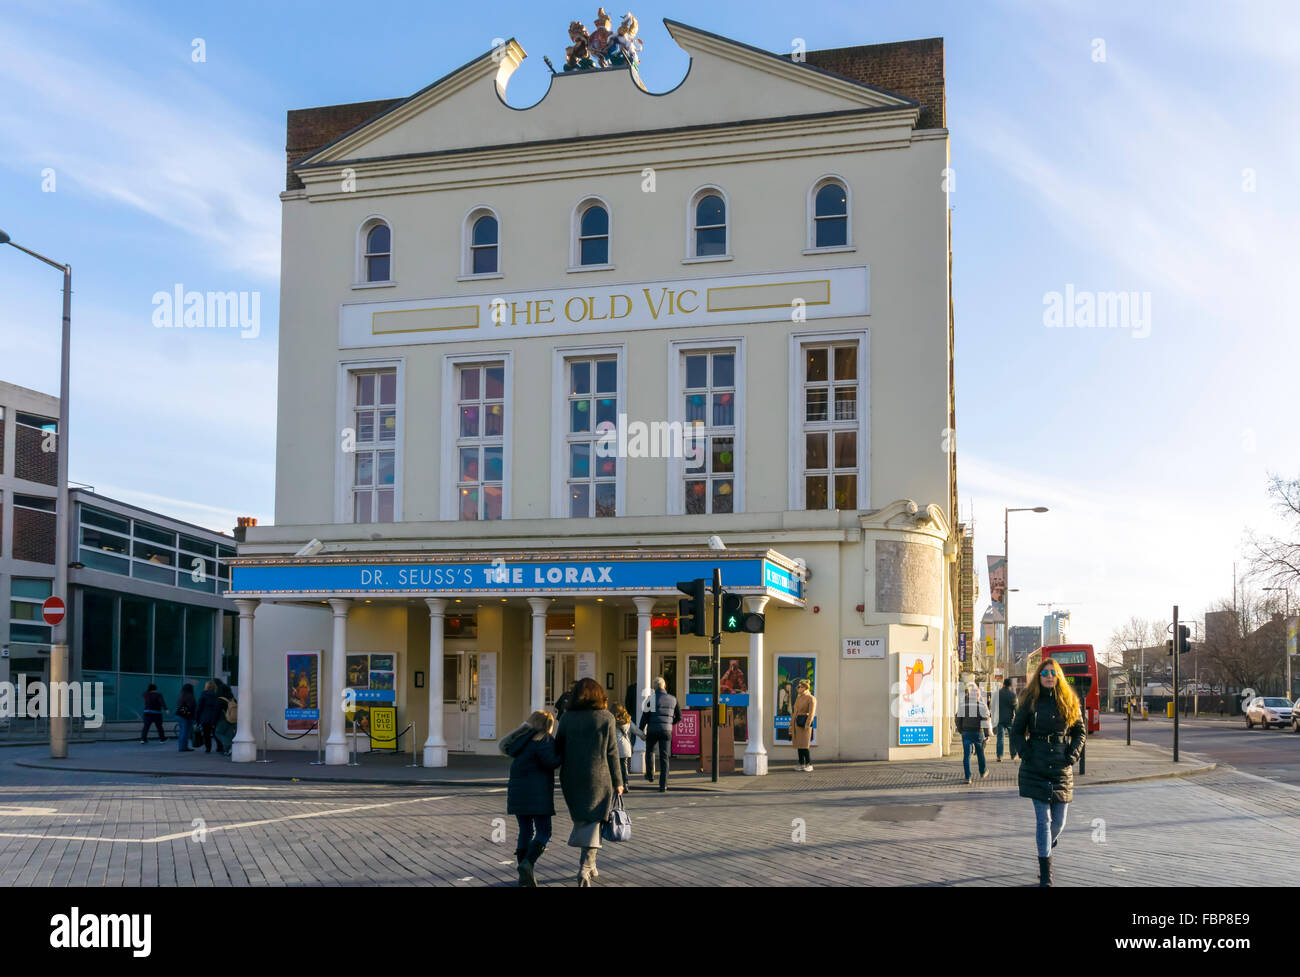 The Old Vic Theatre in The Cut, Waterloo, London. - Stock Image